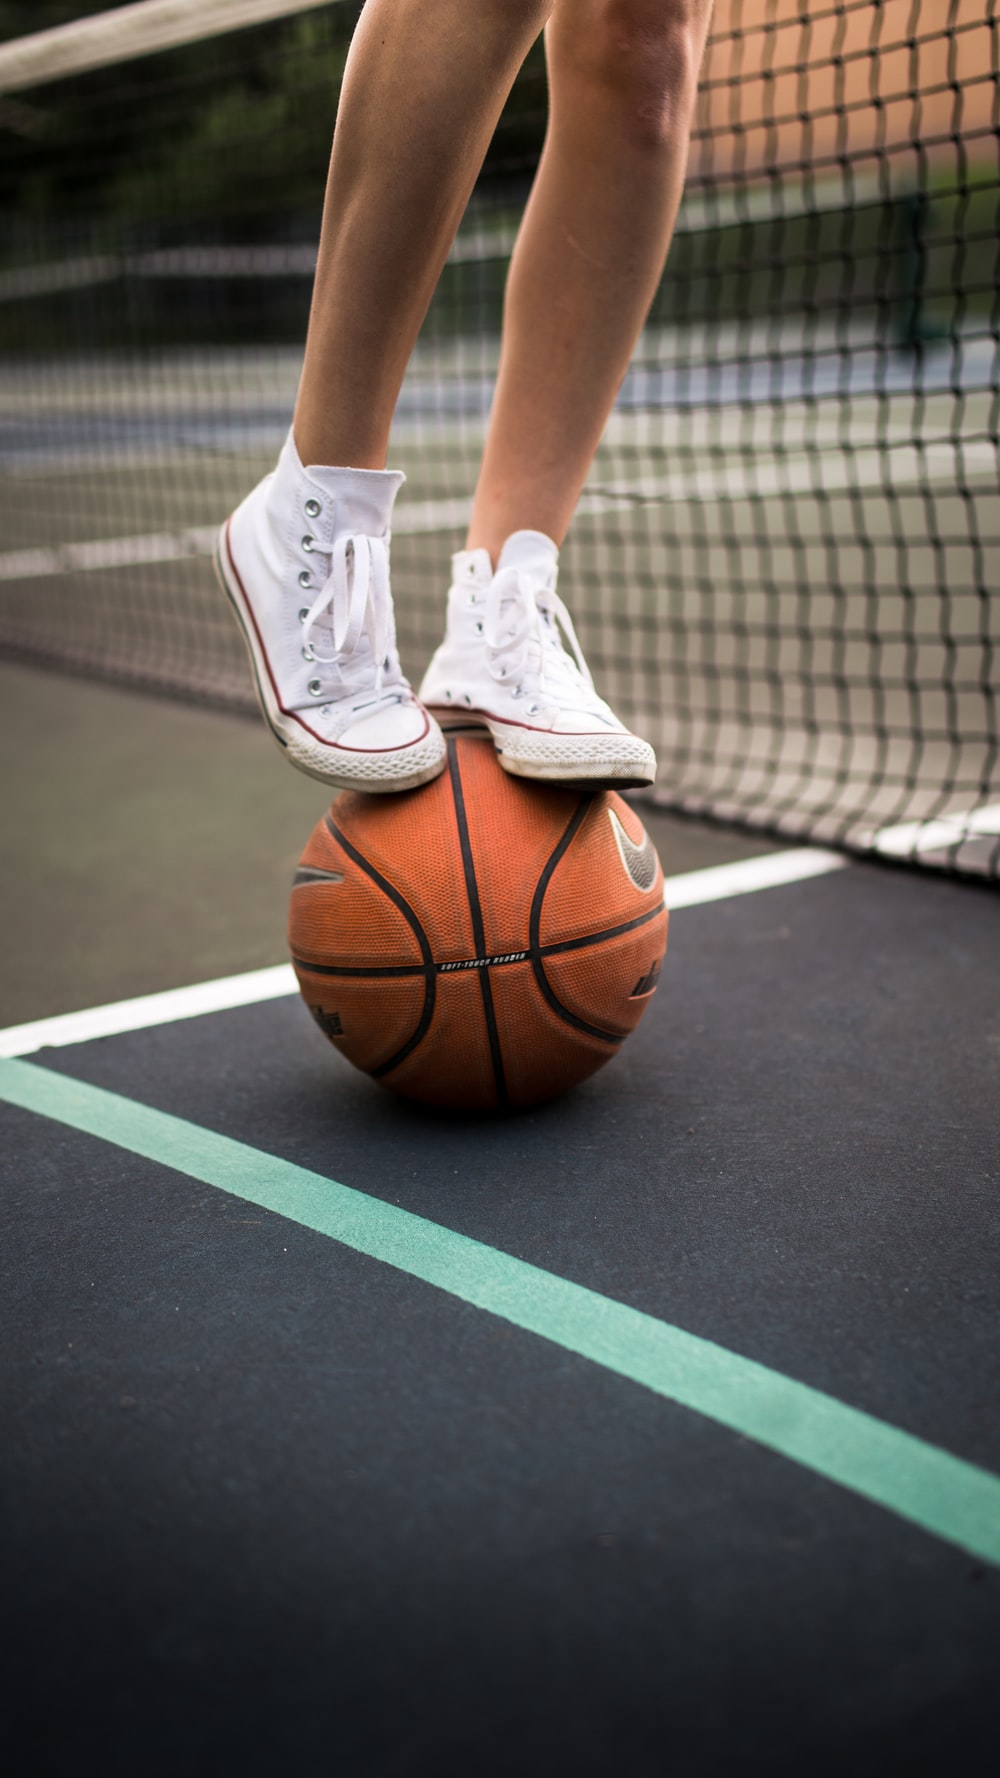 person in white nike athletic shoes standing on basketball court